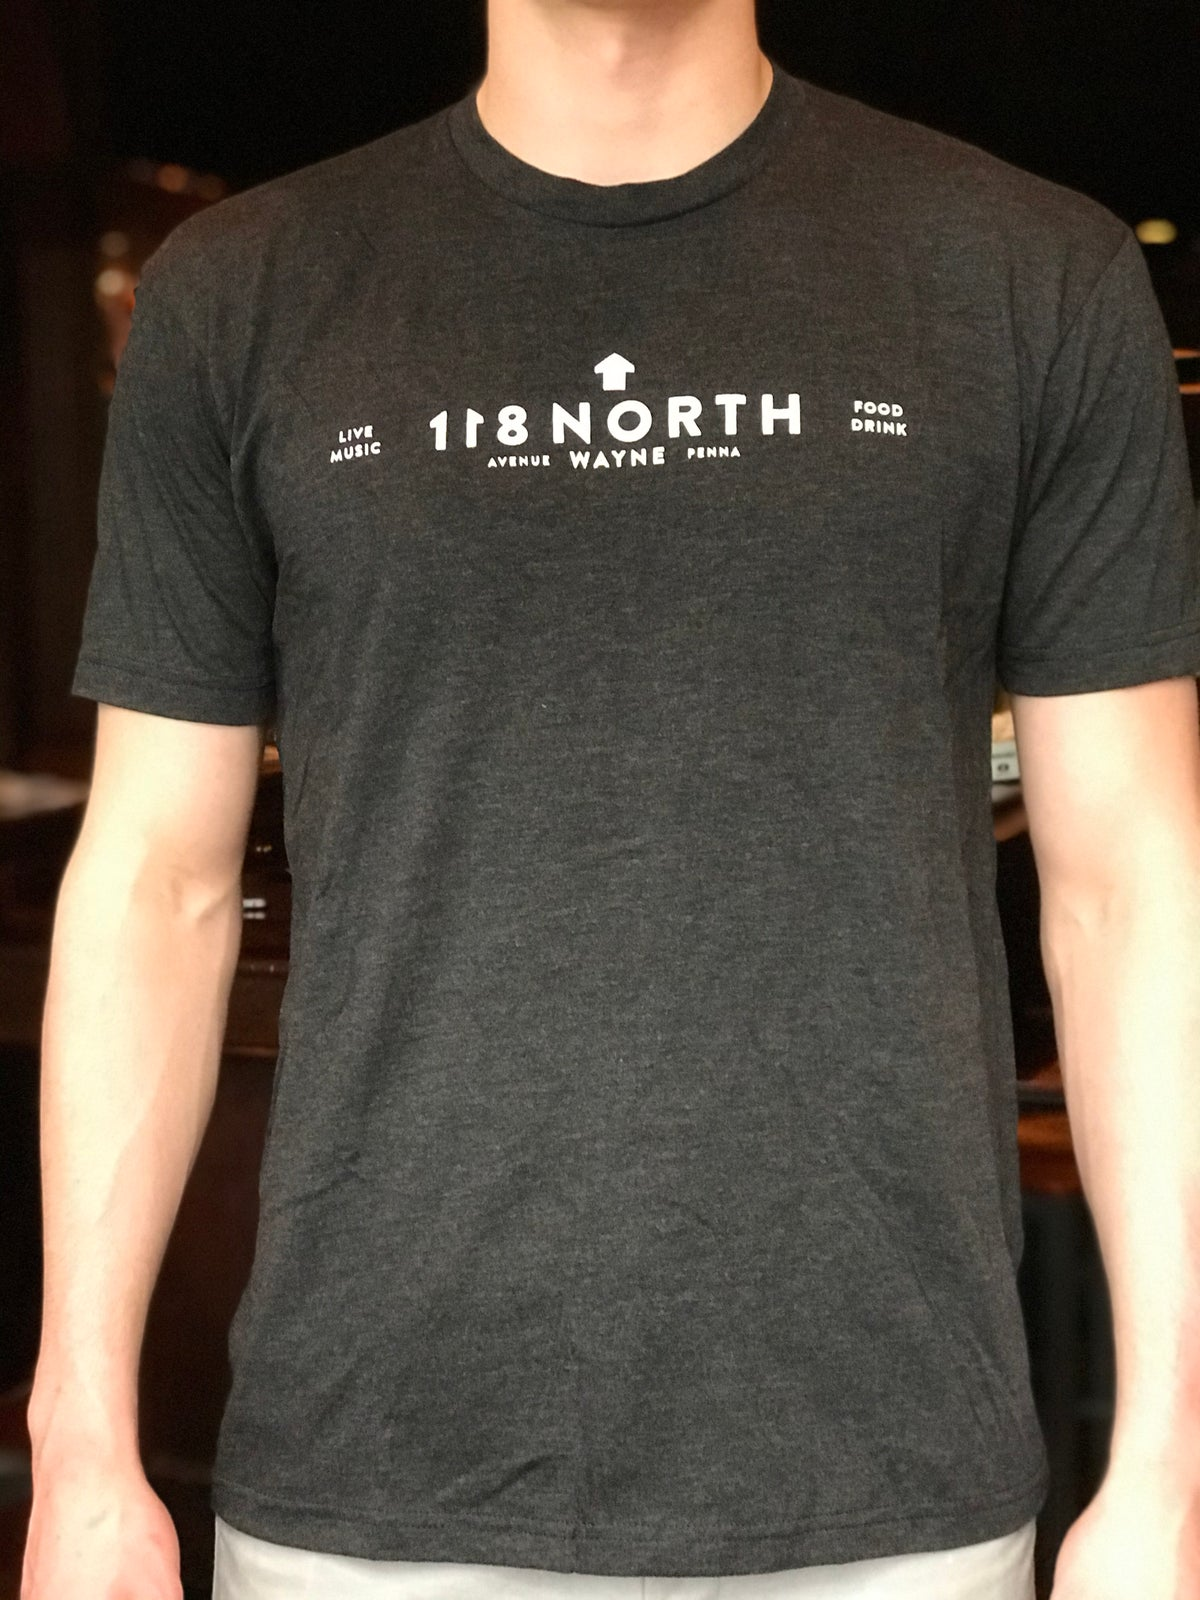 118 North Dark Grey T-Shirt